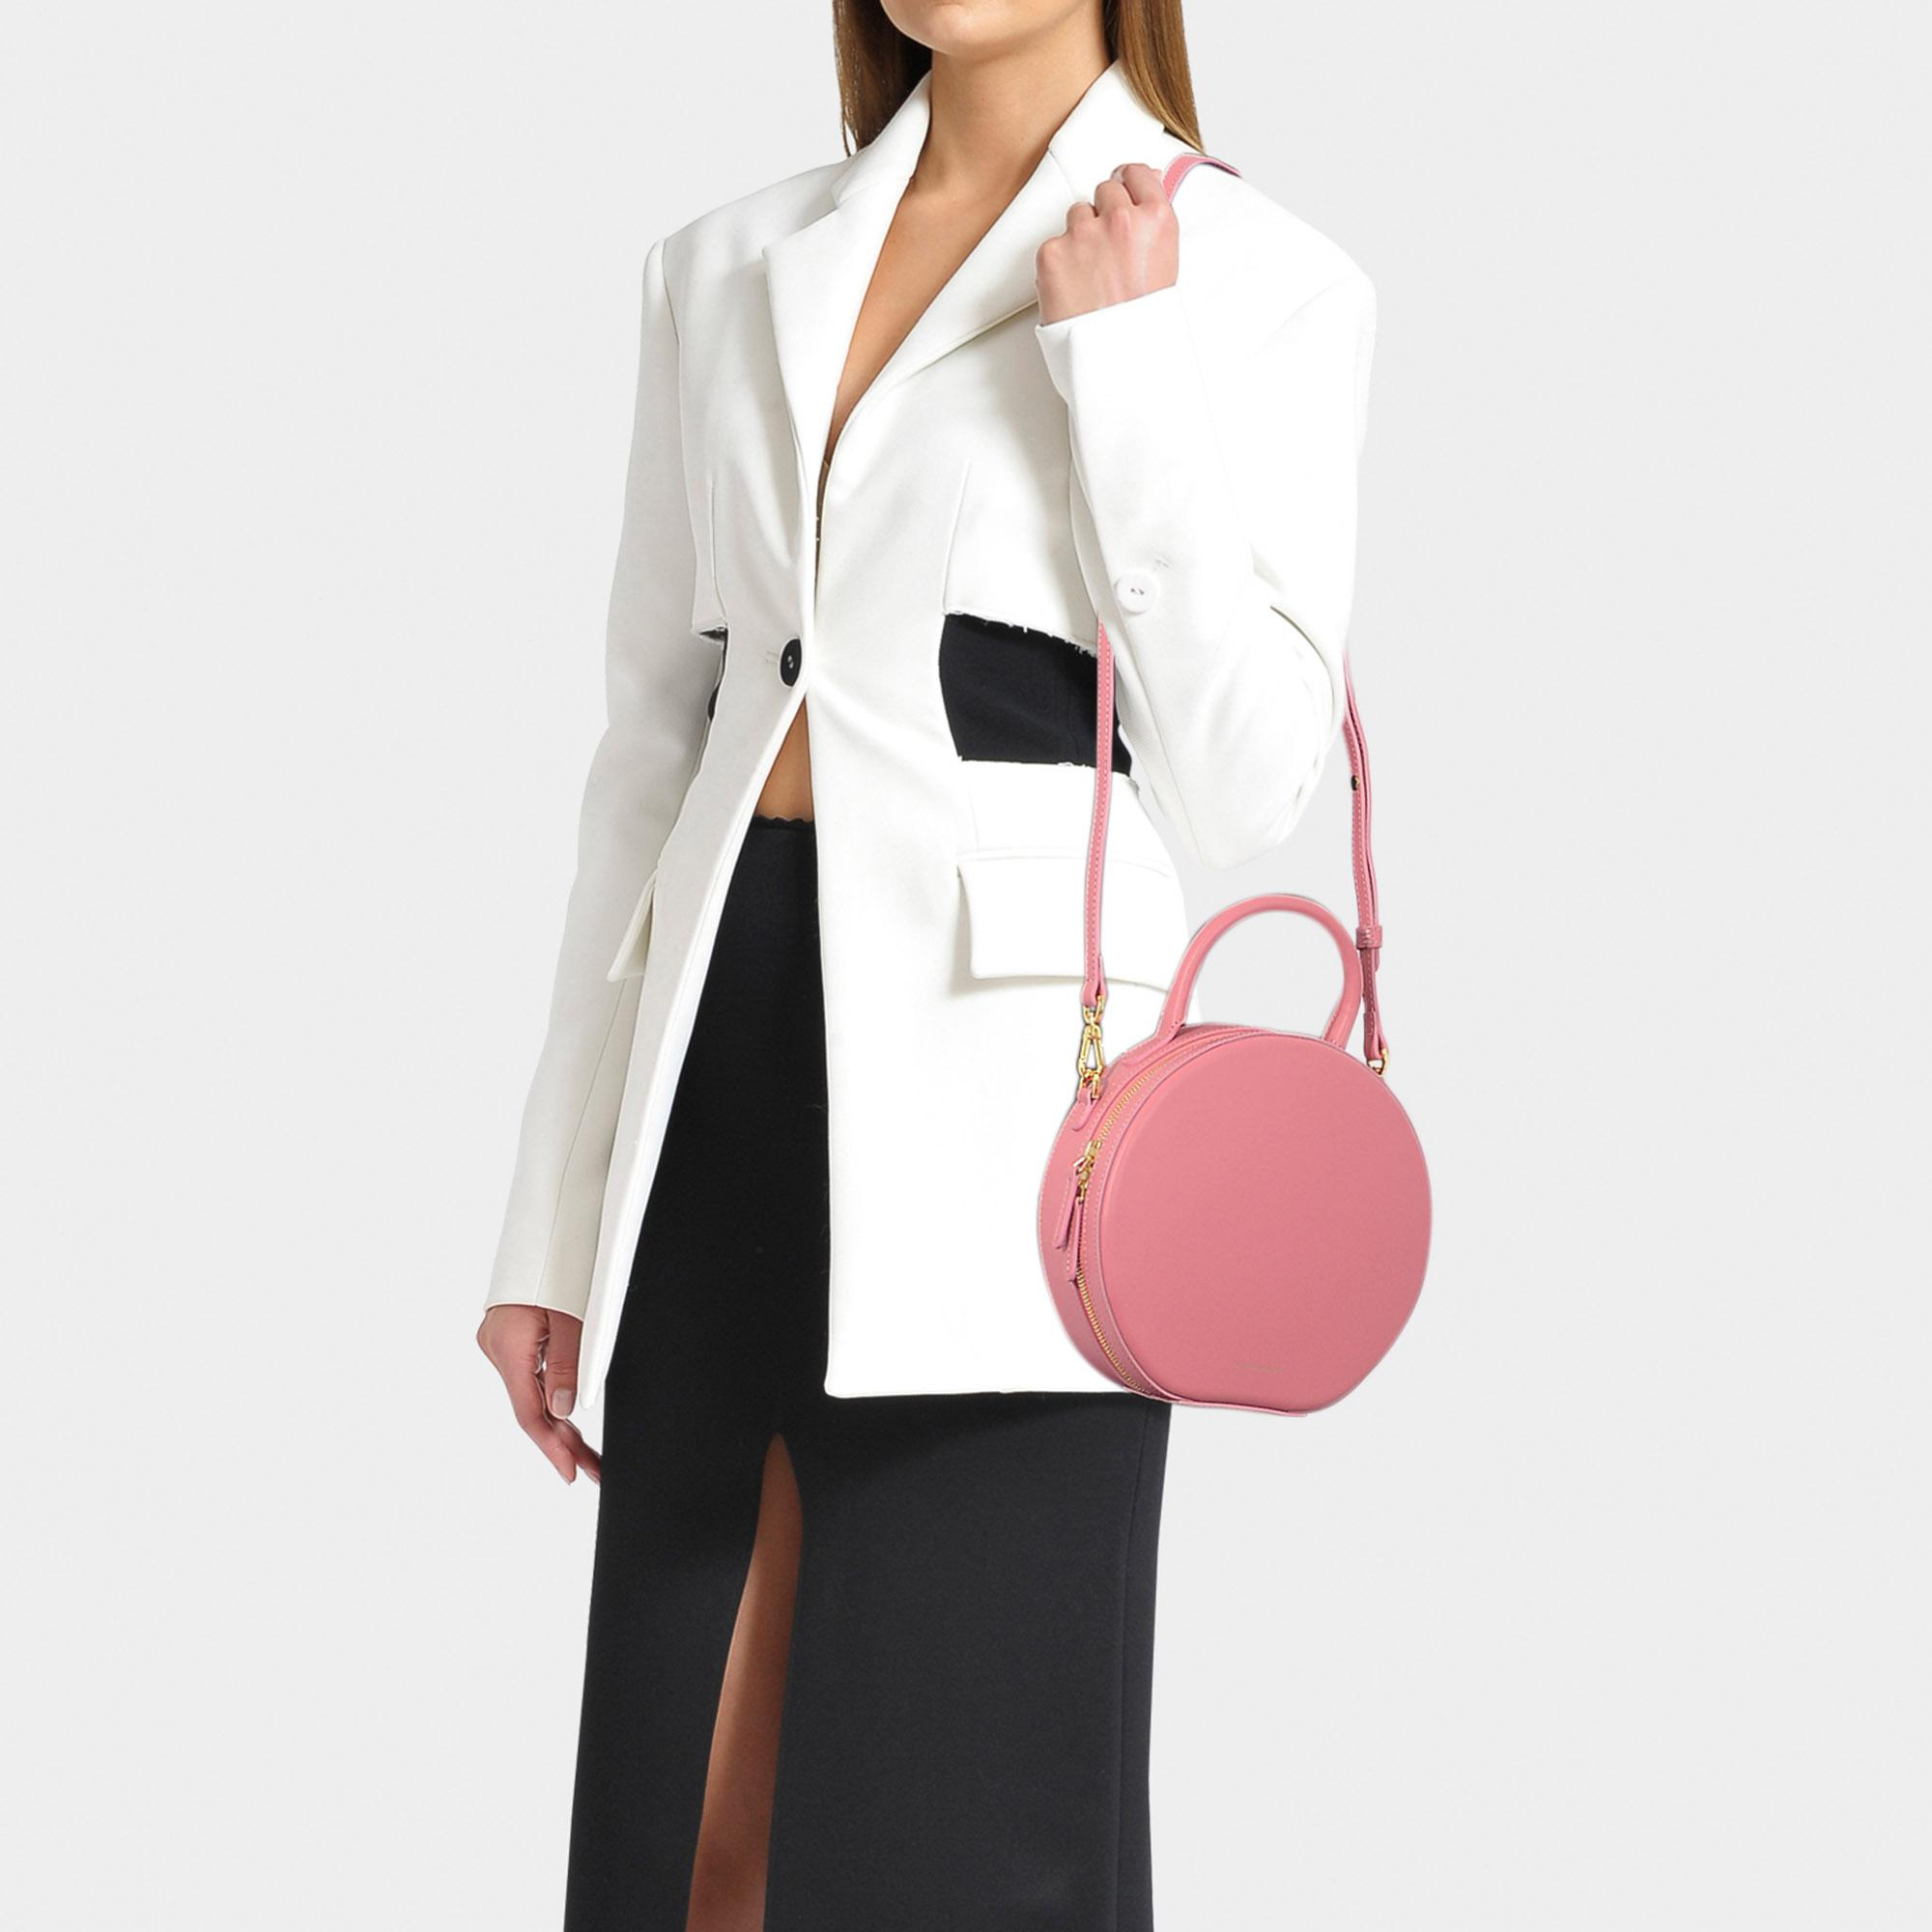 778baba9aa95 Lyst - Mansur Gavriel Circle Crossbody Bag In Pink Calfskin And ...